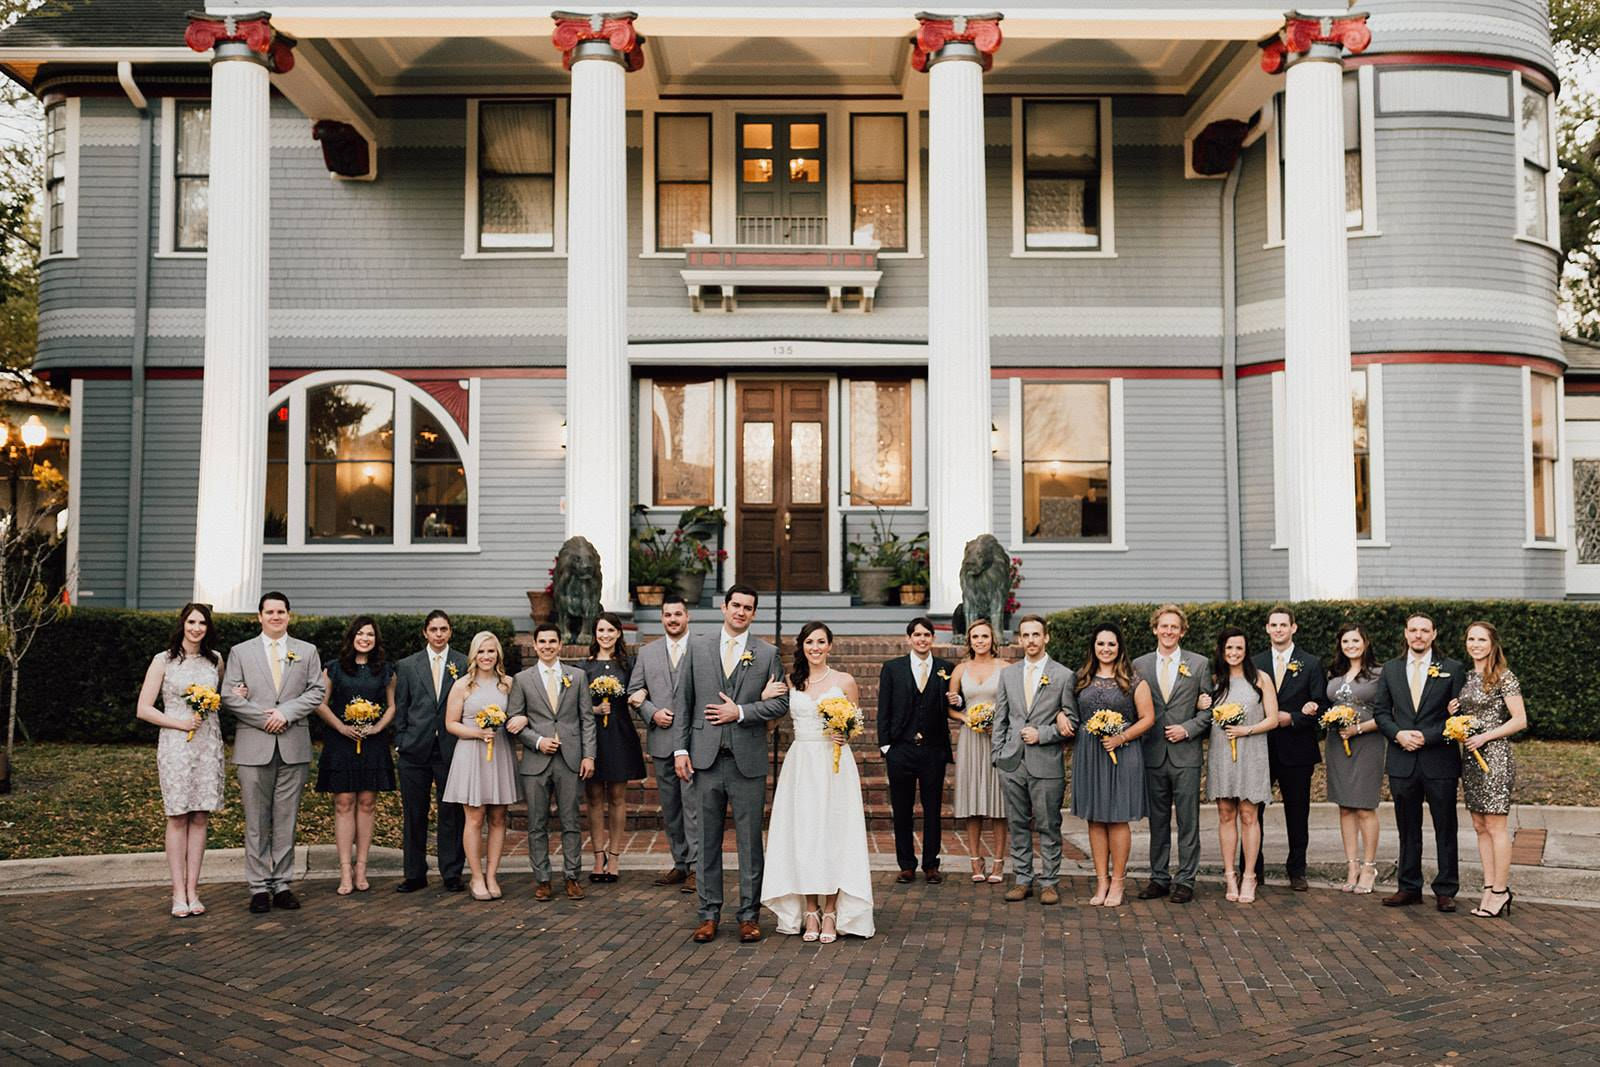 As You Wish - wedding party in front of historic house wearing shades of gray